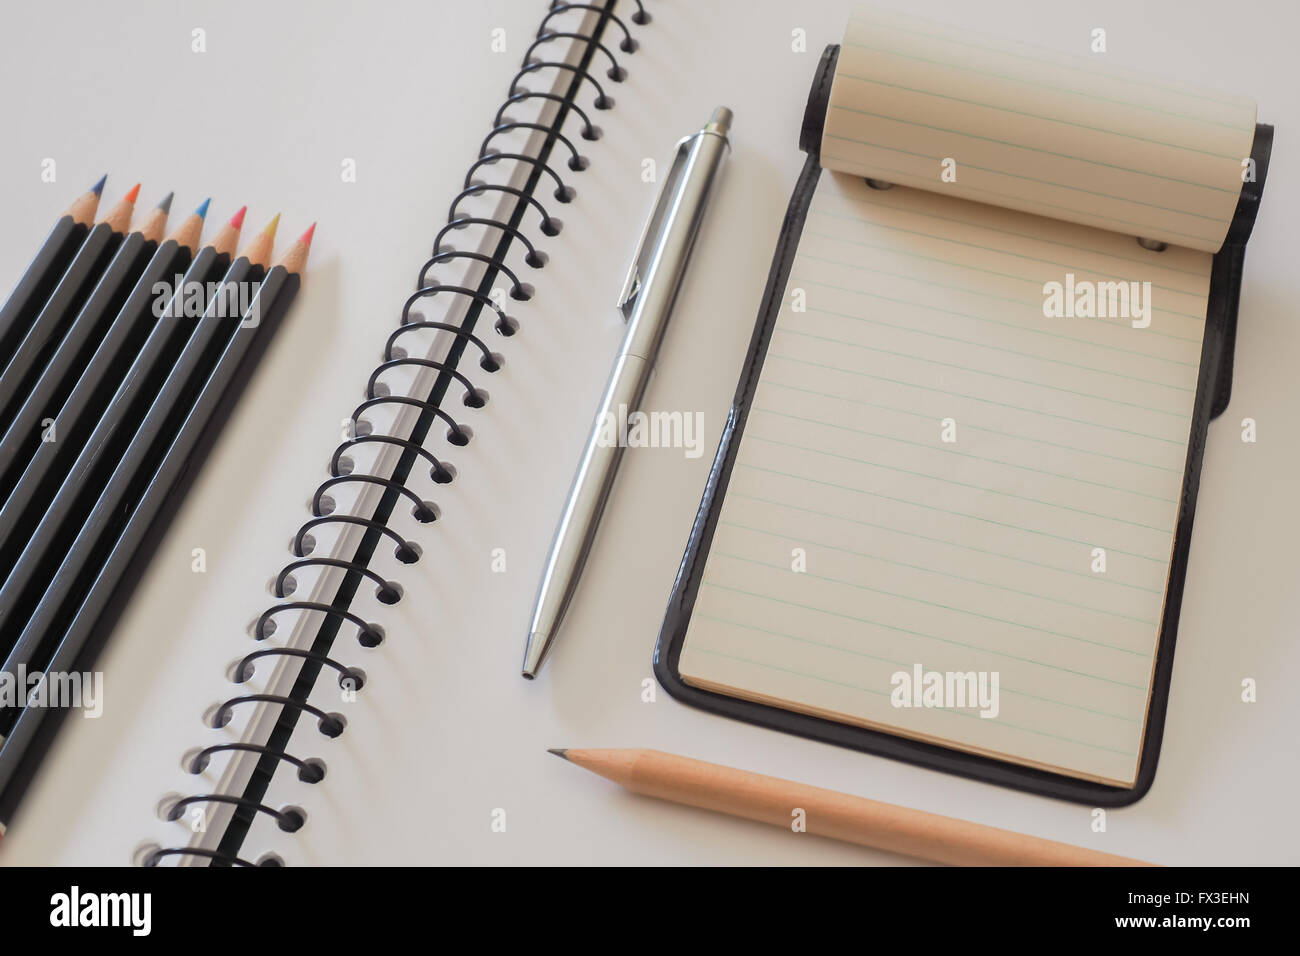 Note Pad with Colored Pencils - Stock Image